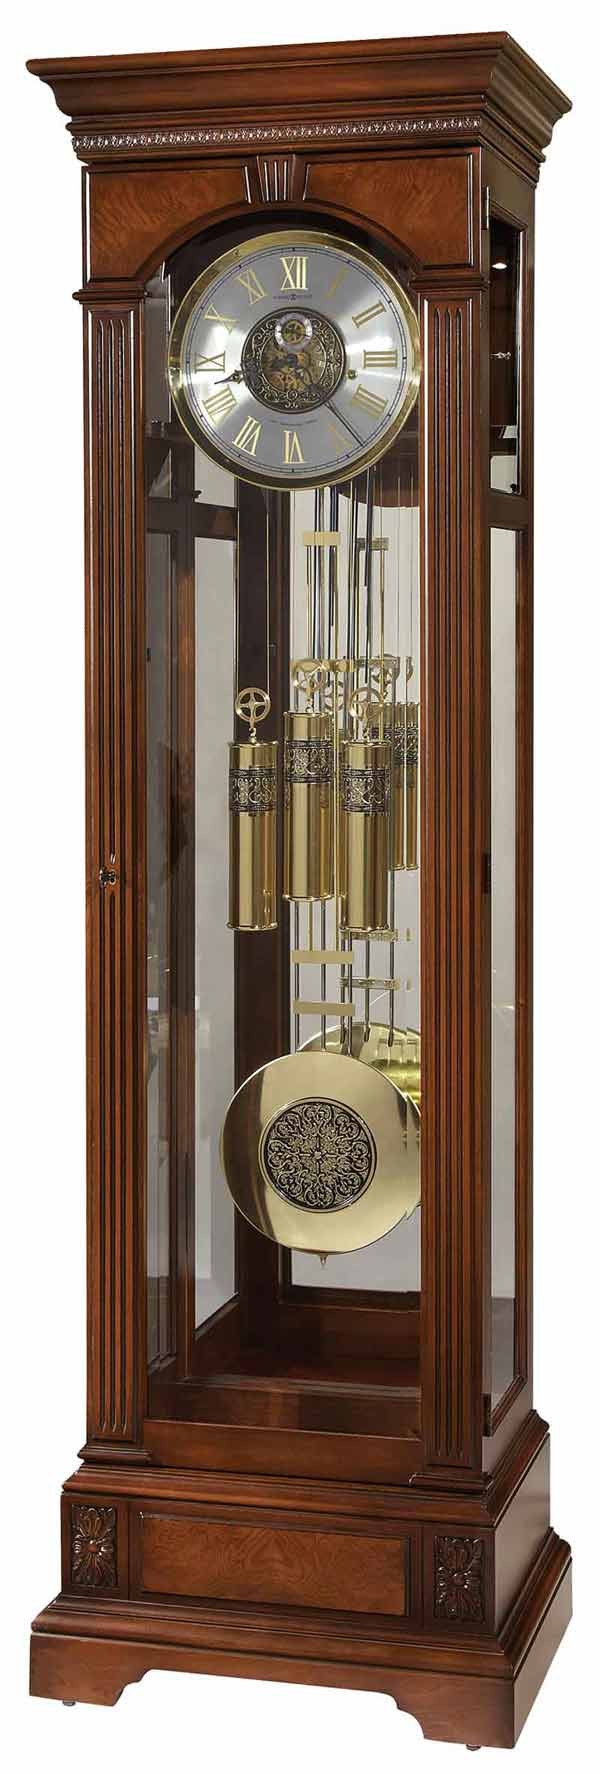 Howard Miller Alford 611 224 88th Anniversary Edition Grandfather Clock